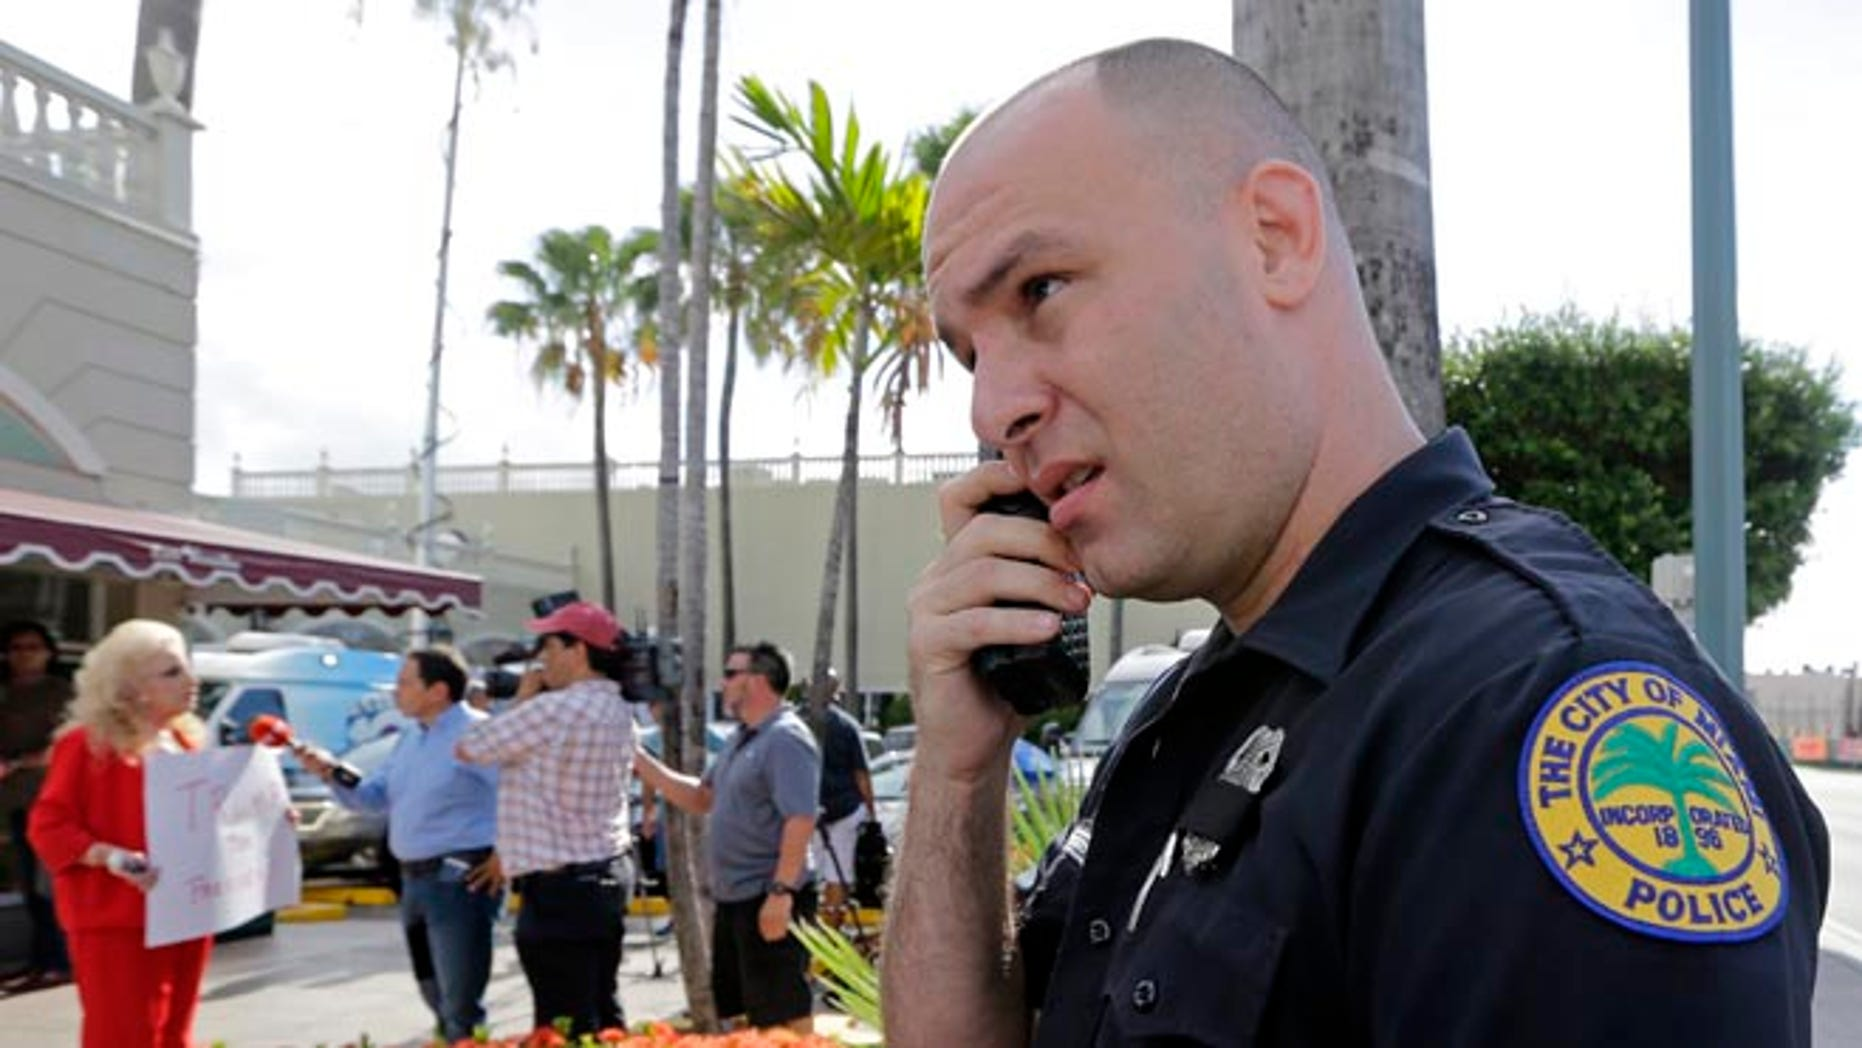 City of Miami police officer R. Delgado covers his badge with a black band as he honors the death of police officers in Dallas, Friday, July 8, 2016, at a Republican presidential candidate Donald Trump campaign stop. Trump has called off his two Friday campaign events in Miami in the wake of deadly sniper killings of Dallas police officers. (AP Photo/Alan Diaz)